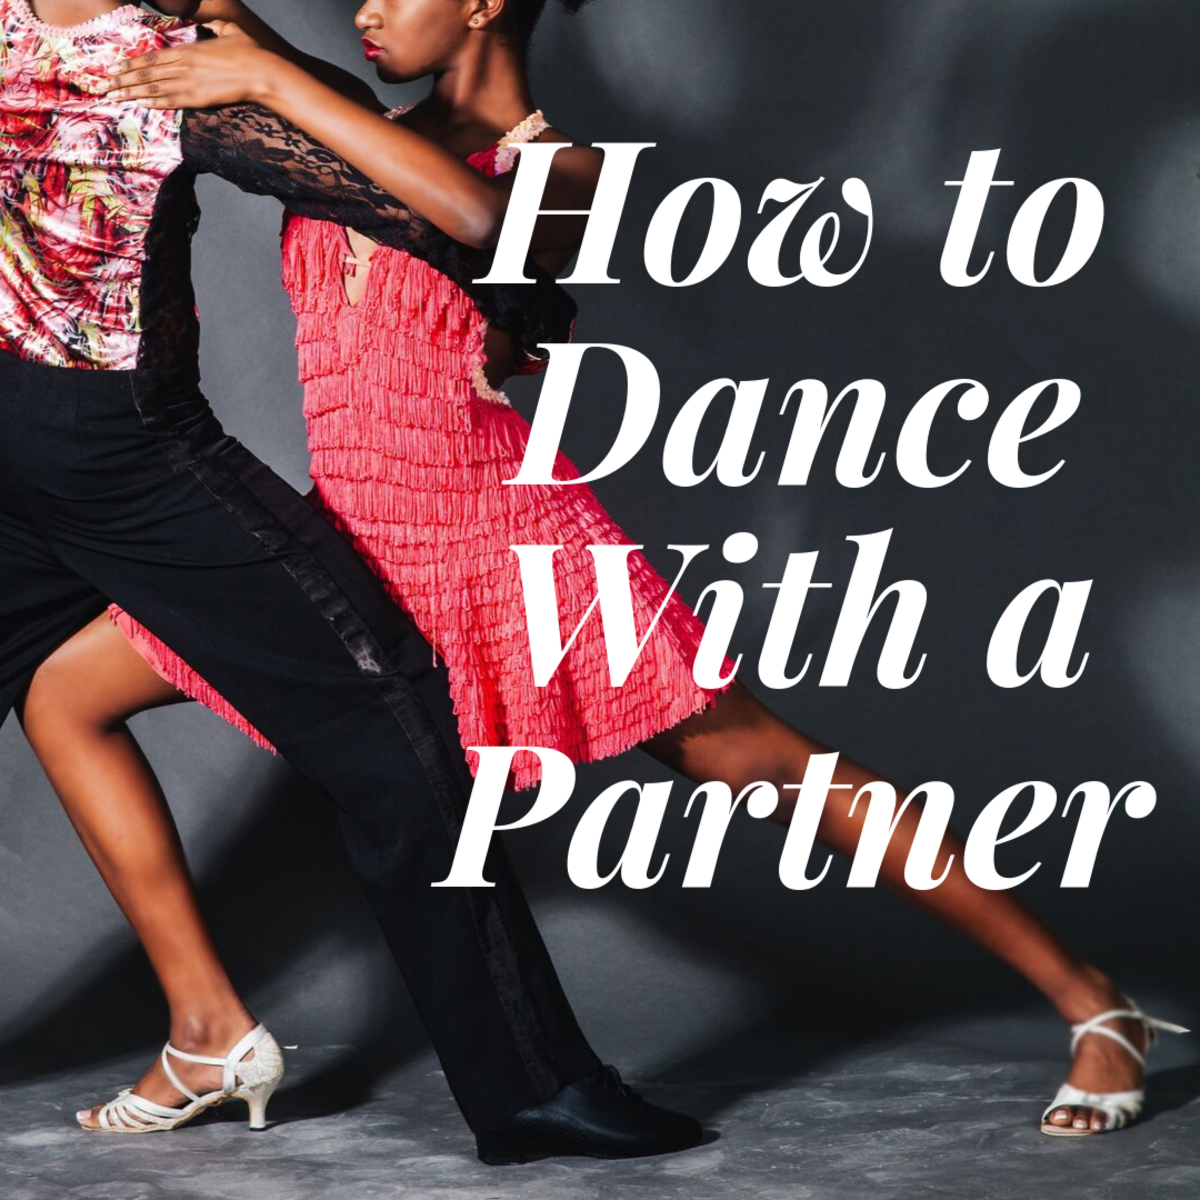 How to Lead and Follow (The Secret to Dancing With a Partner)